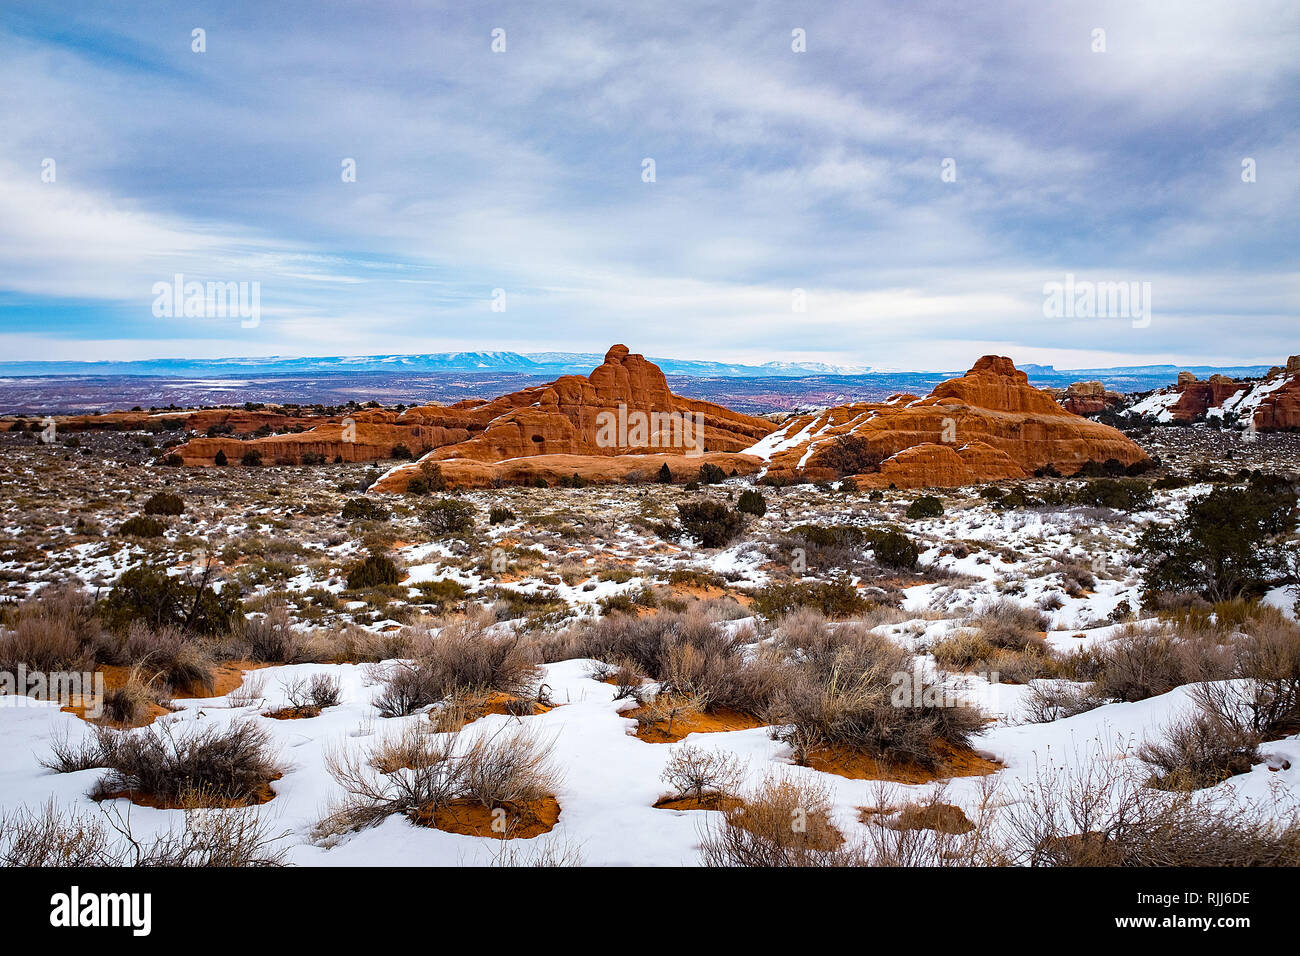 January 2019: A snow covered Devil's Garden Trail in Arches National Park, Moab, Utah. - Stock Image